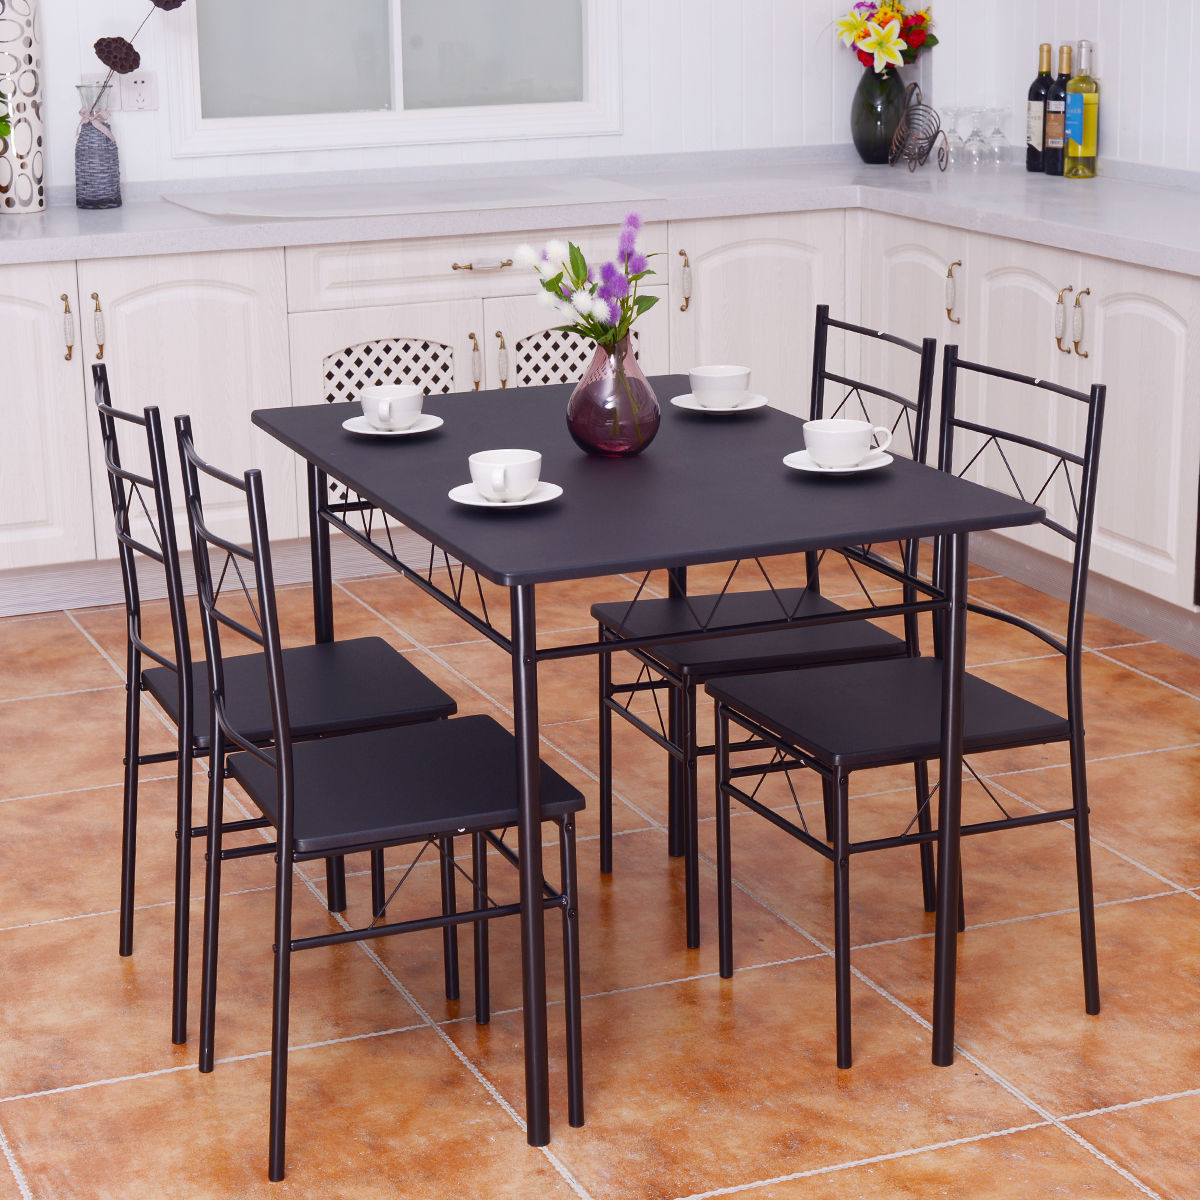 Breakfast Chairs Costway 5 Piece Dining Table Set 4 Chairs Wood Metal Kitchen Breakfast Furniture Black